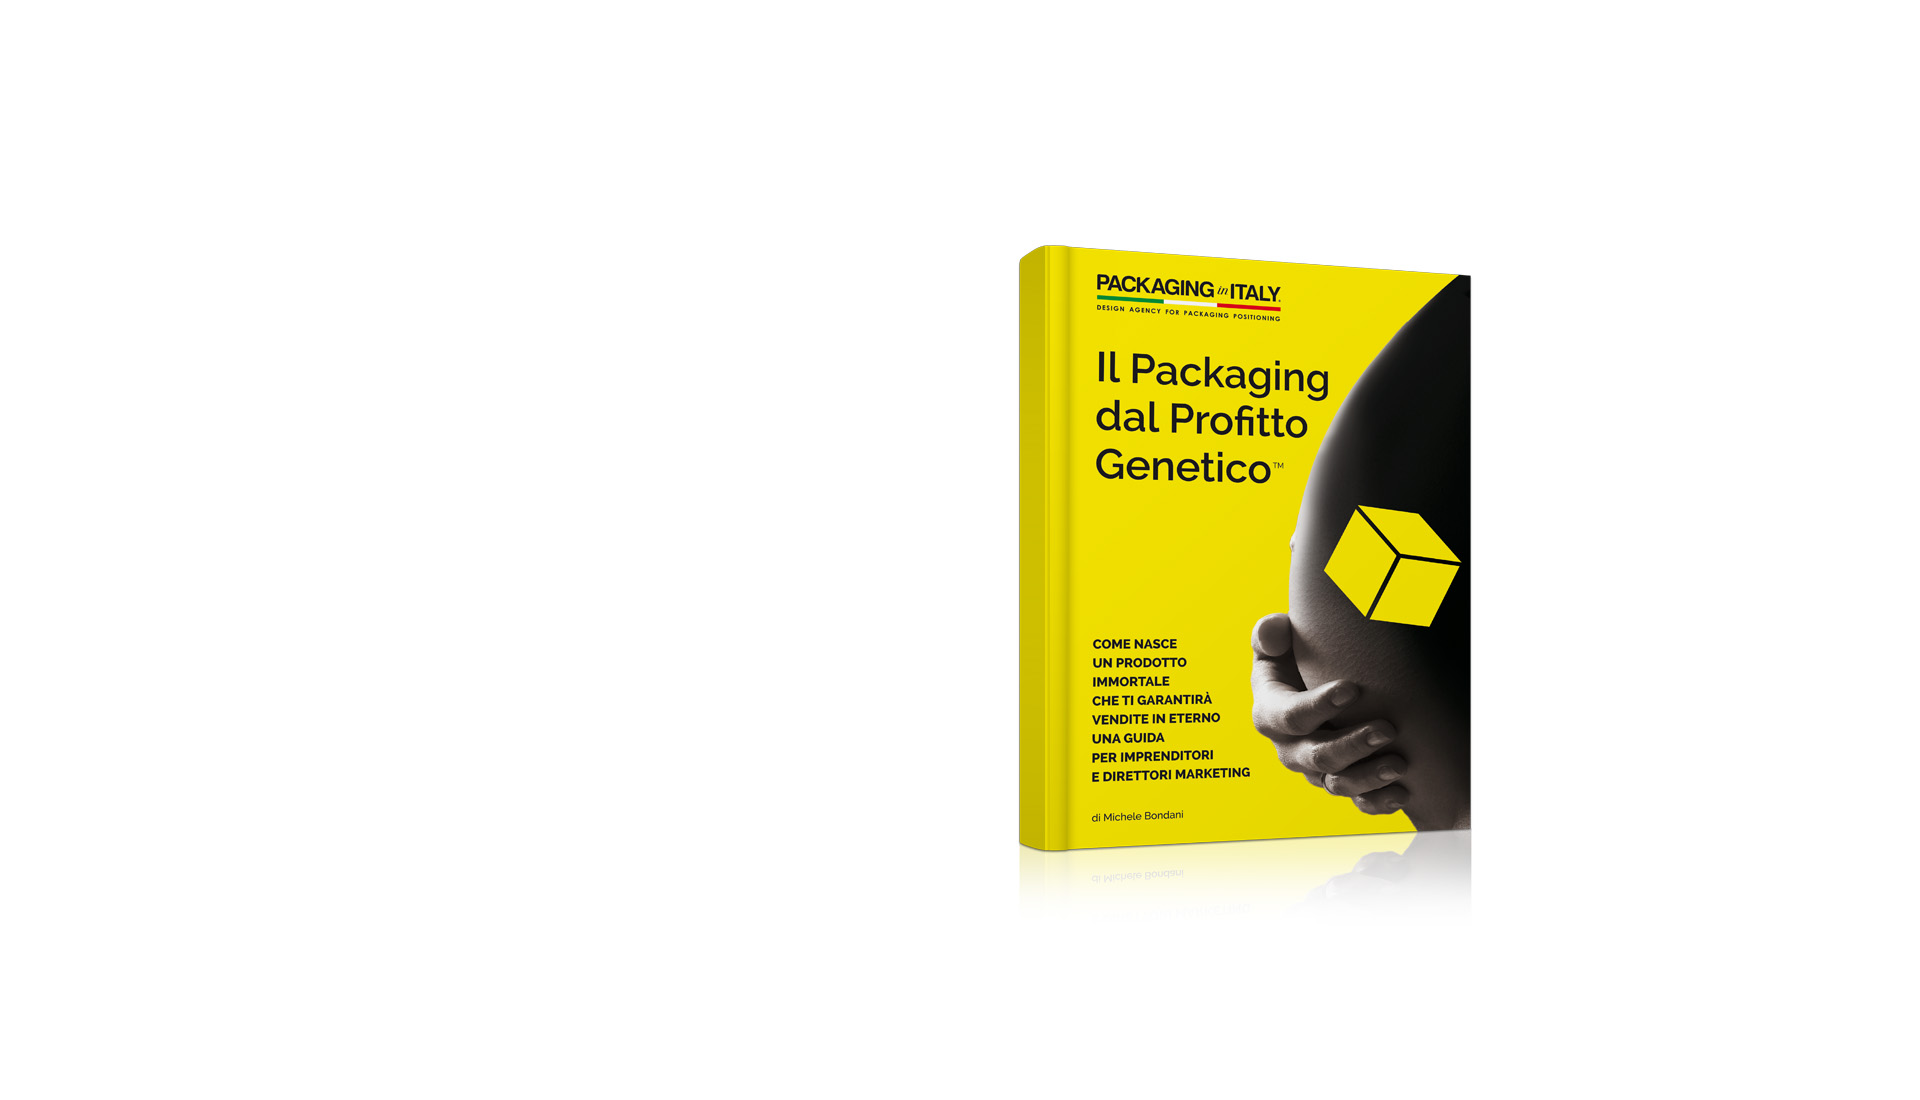 SLIDE 08 – IL PACKAGING DAL PROFITTO GENETICO™